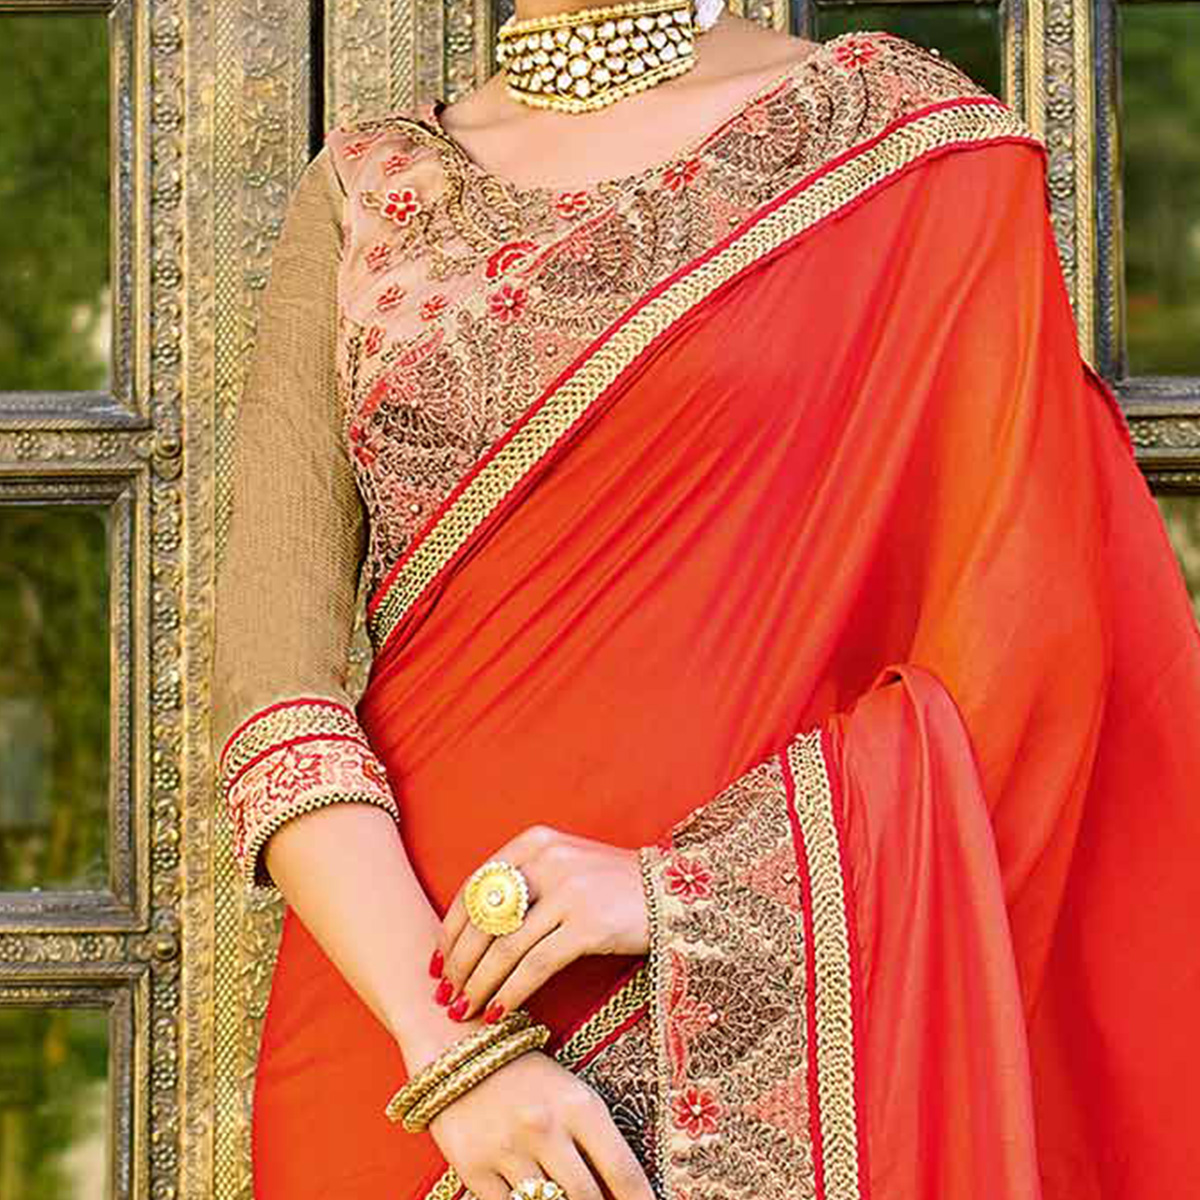 Classy Orange-Beige Colored Designer Embroidered Silk And Lycra Saree